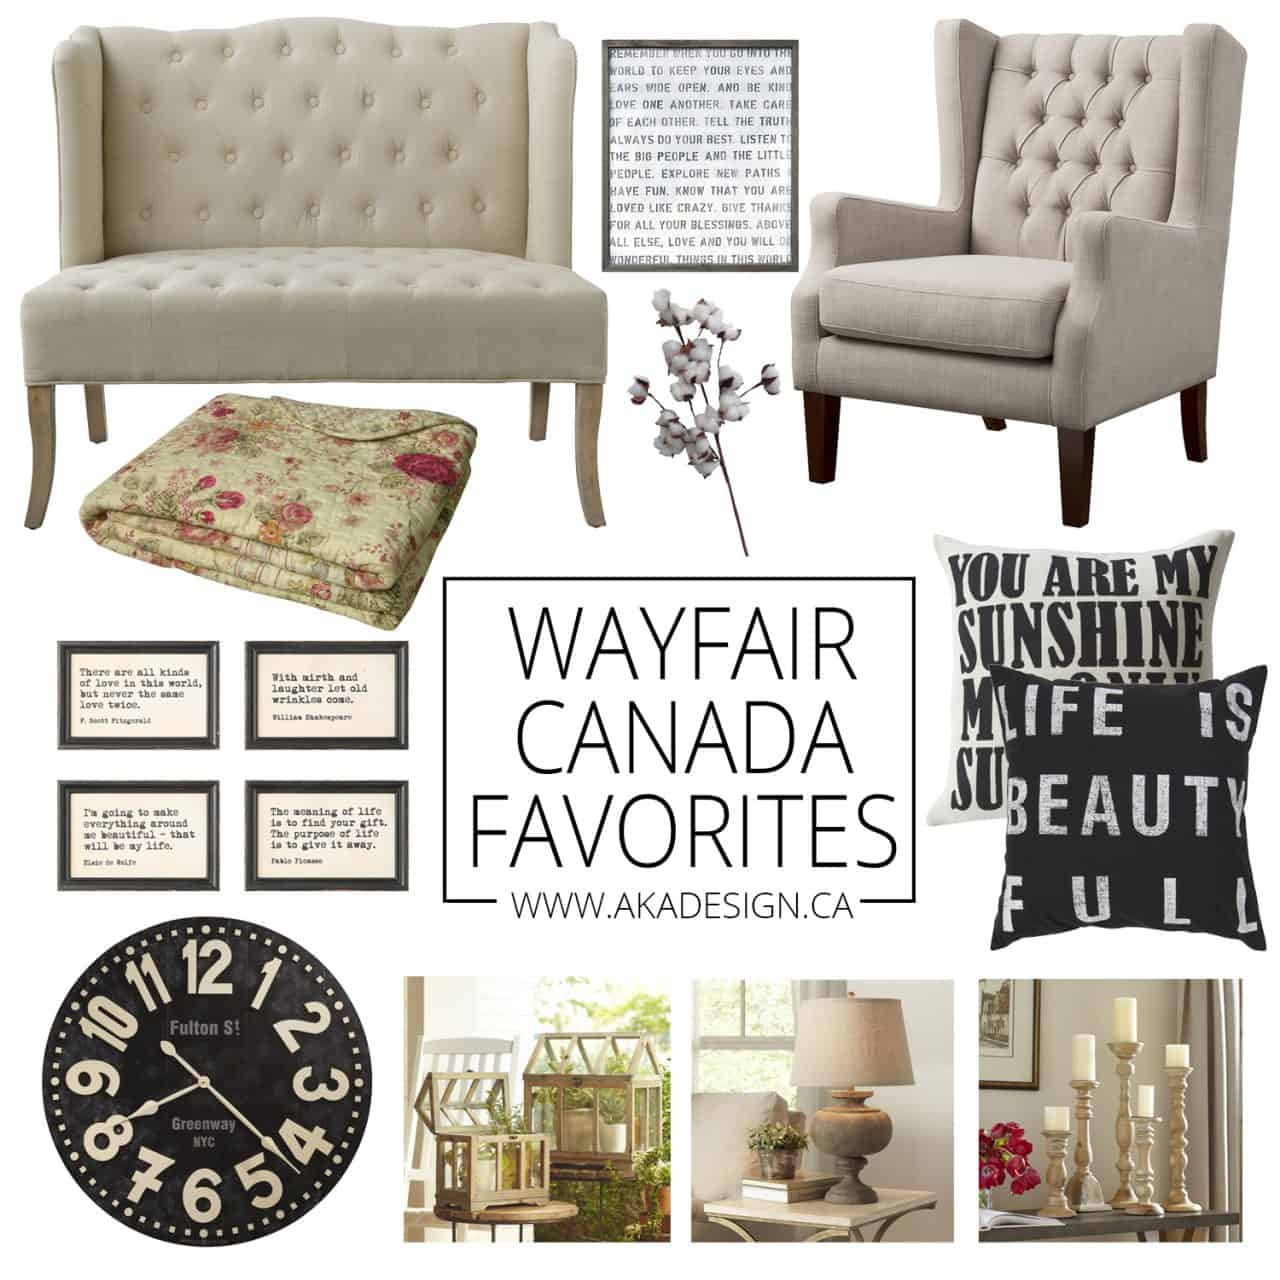 My Favorite Decorating Pieces & Wayfair Canada Launches!